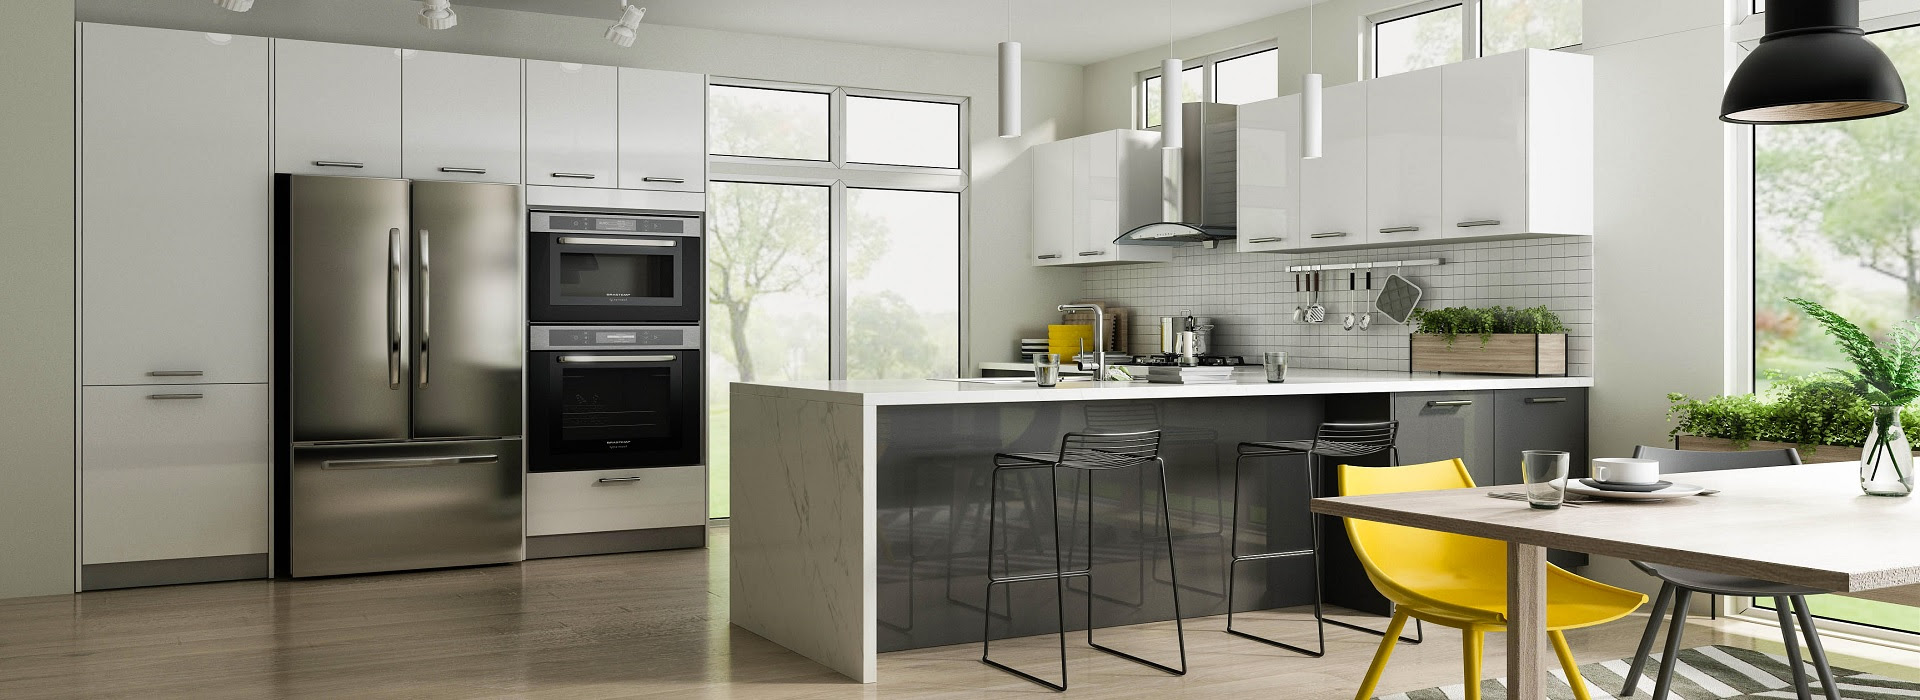 High Gloss Cabinets European Style Cabinets Rta Frameless Cabinet